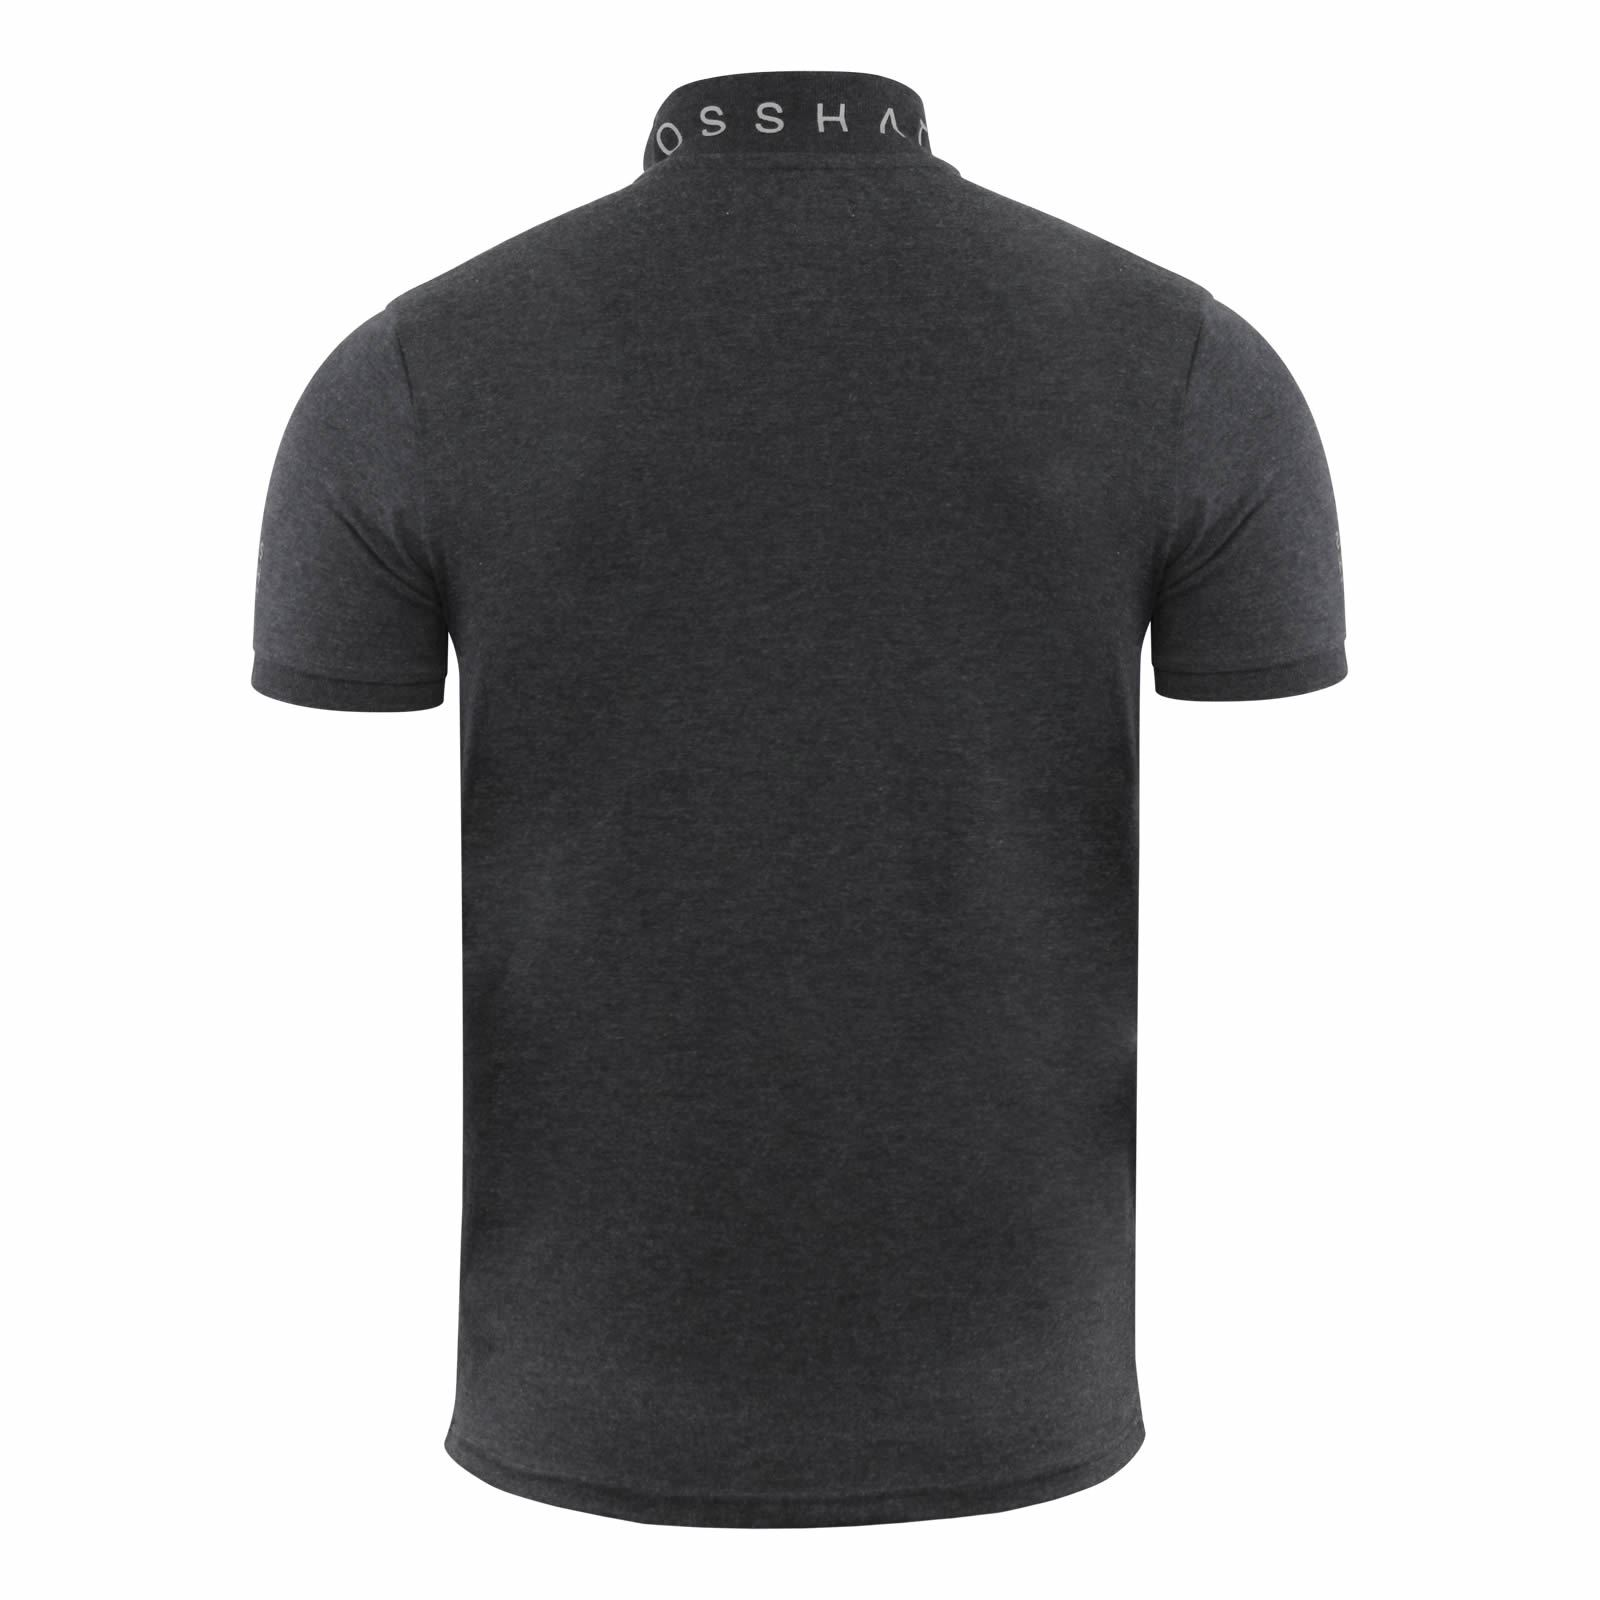 Mens-Polo-T-Shirt-Crosshatch-Evangels-Collared-Cotton-Short-Sleeve-Casual-Top thumbnail 24